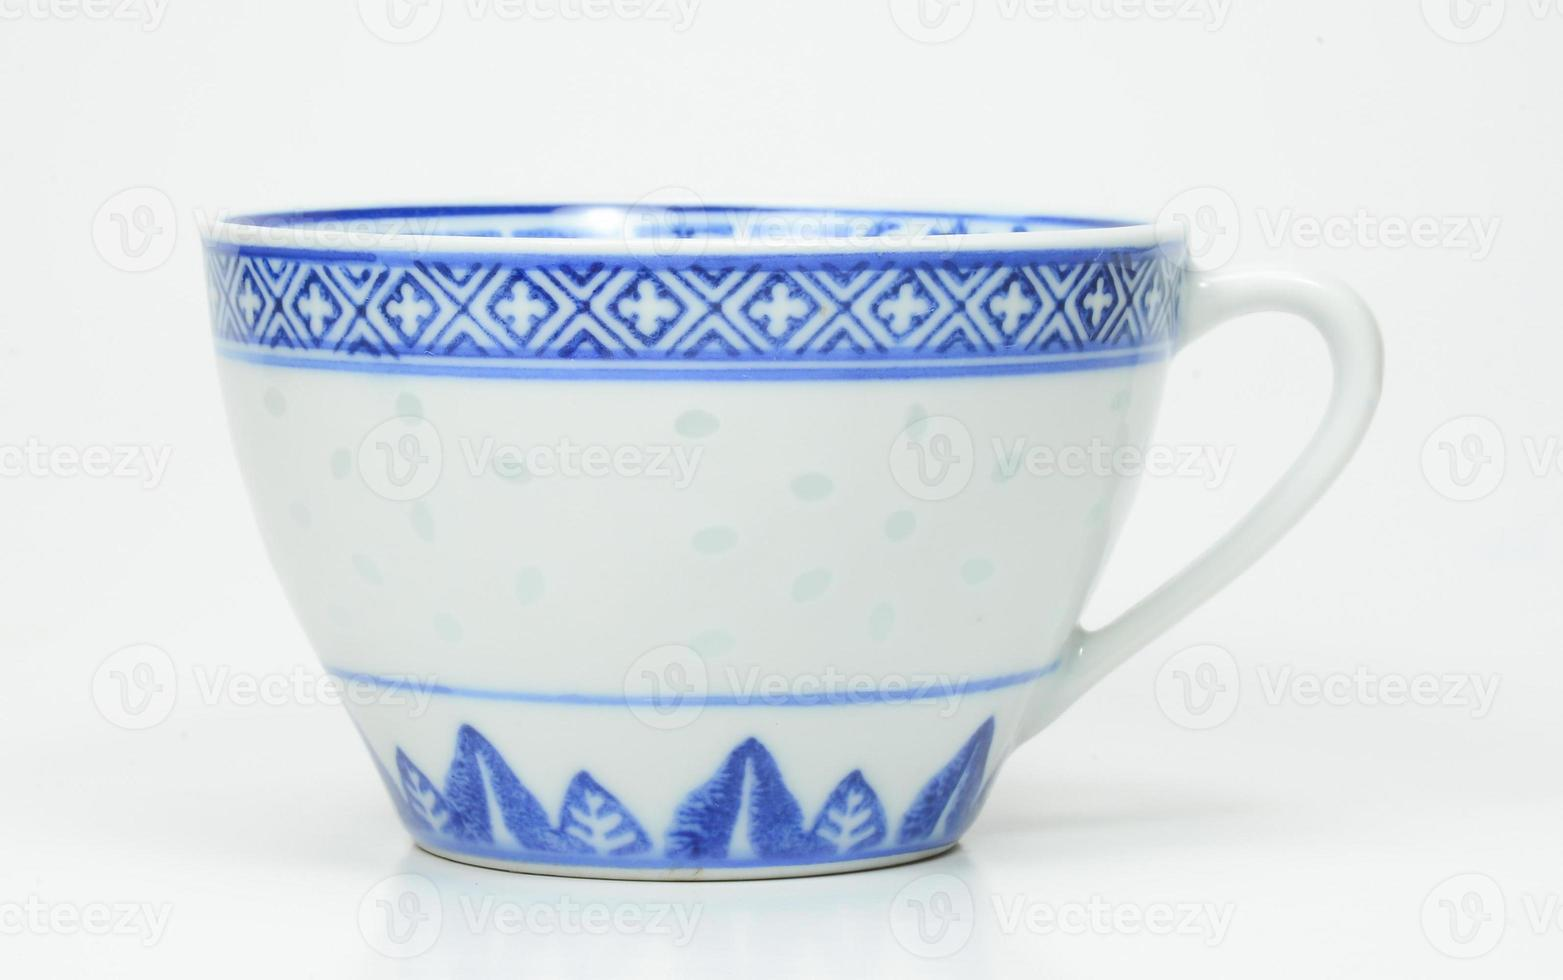 China porcelain cup photo